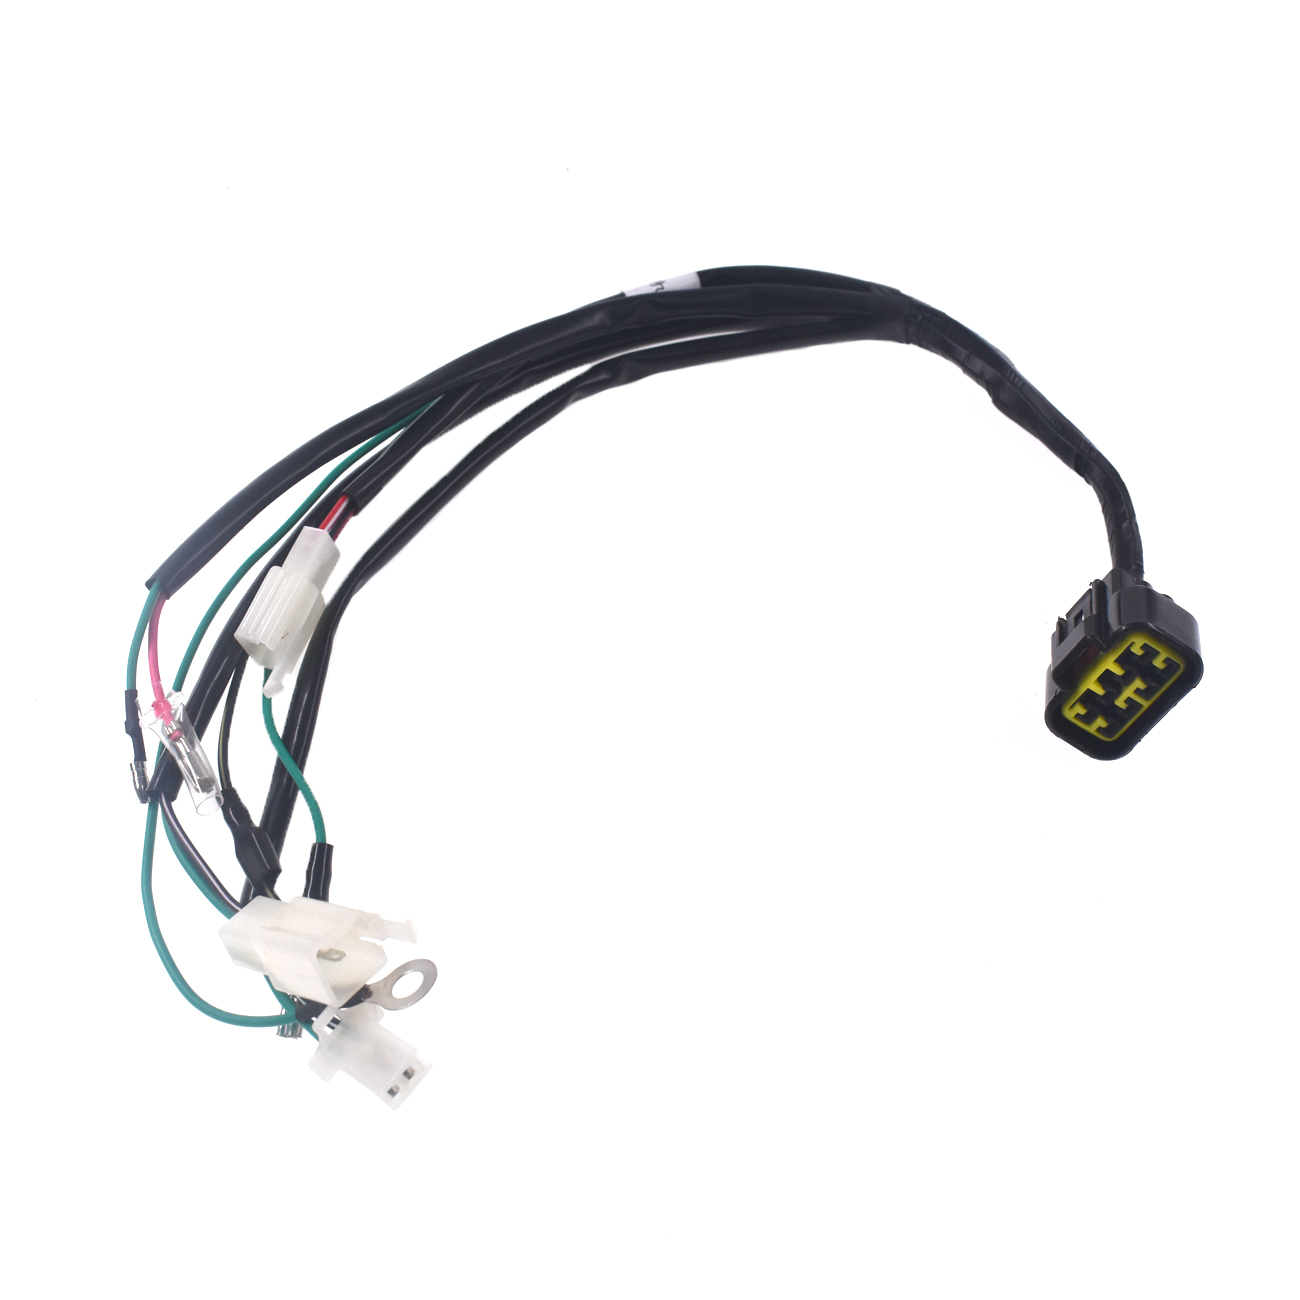 Pouvoir 8 PIN WIRING LOOM HARNESS FOR PIT DIRT BIKE PITBIKE YX ZONGSHEN 125cc High Quality image